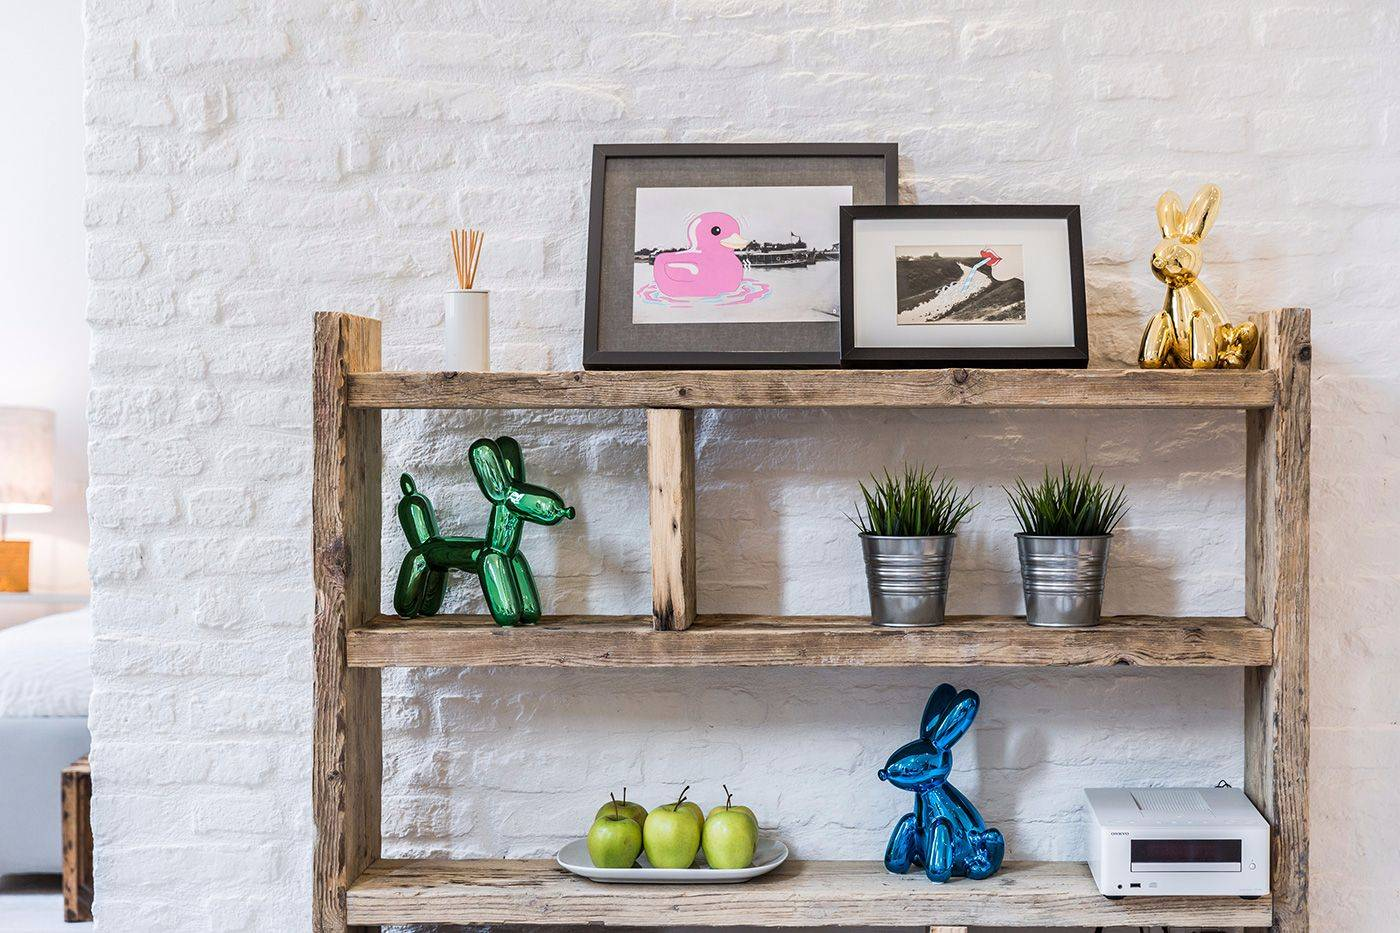 painted white brick walls enhance the colorful objects